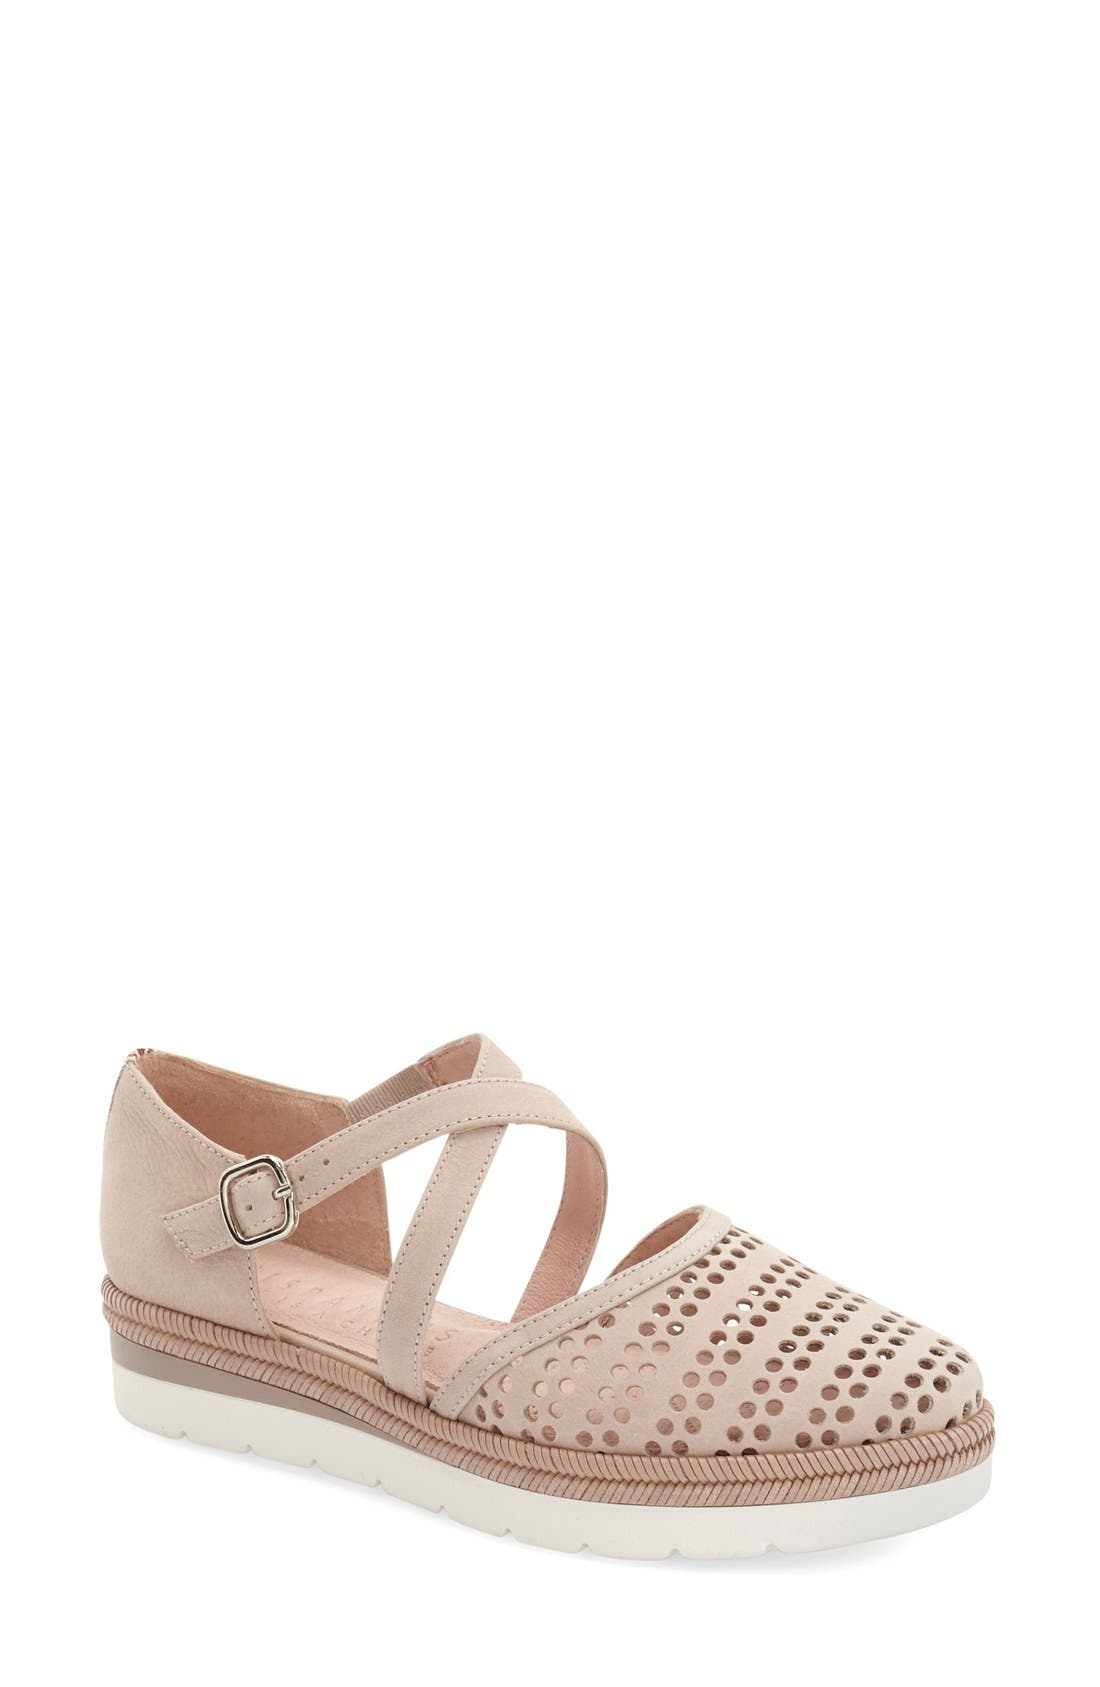 HISPANITAS 'Leesa' Perforated Espadrille Platform Flat